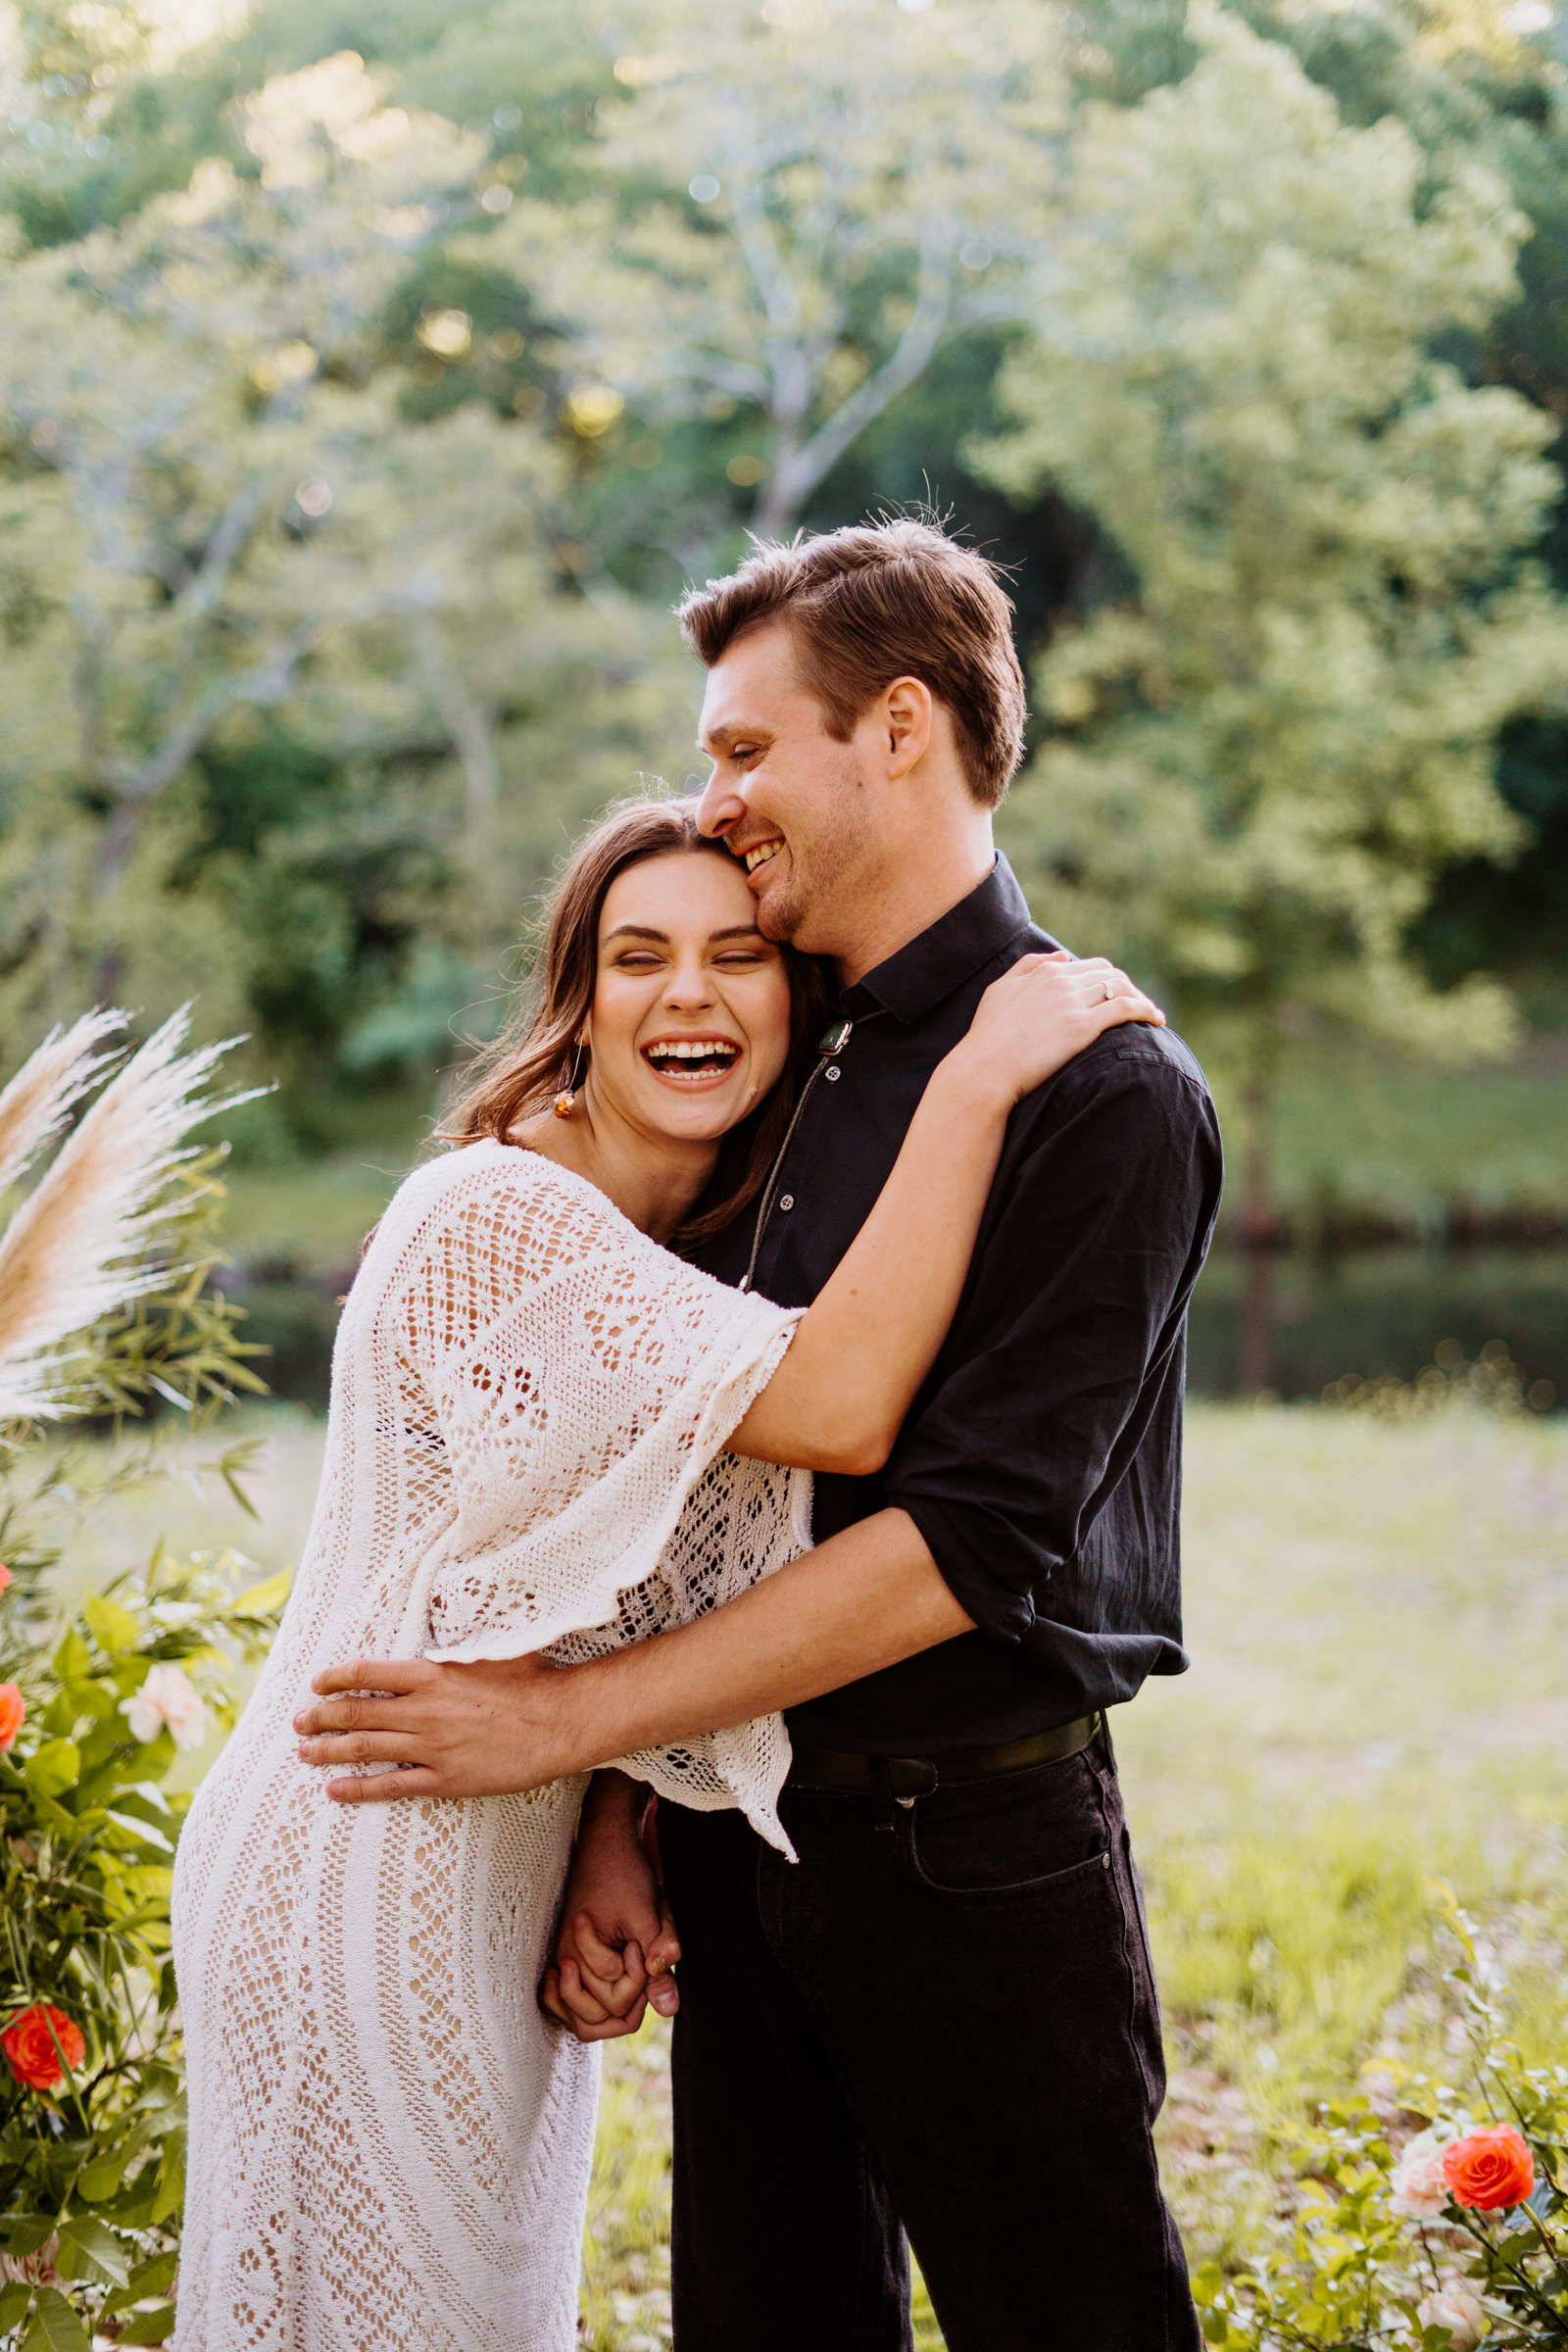 austin-outdoor-boho-elopement-wedding-hawaii-photographer-3